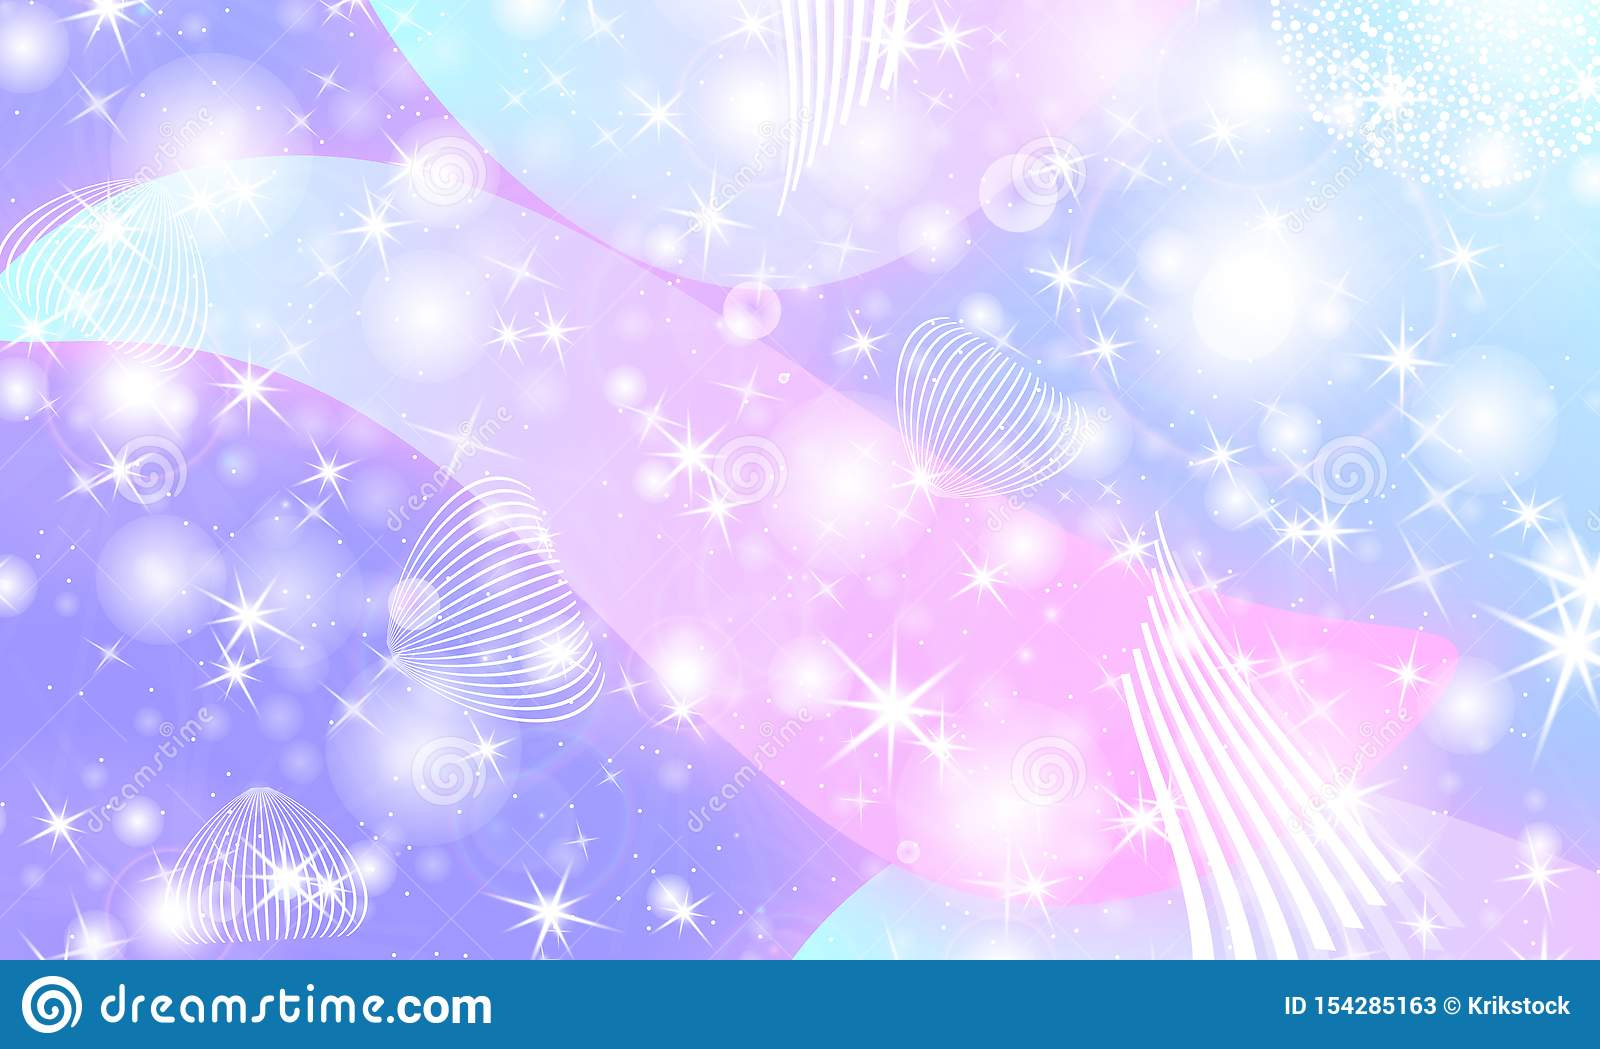 fairy background unicorn pattern princess rainbow galaxy mermaid fantasy stars pastel colors 154285163